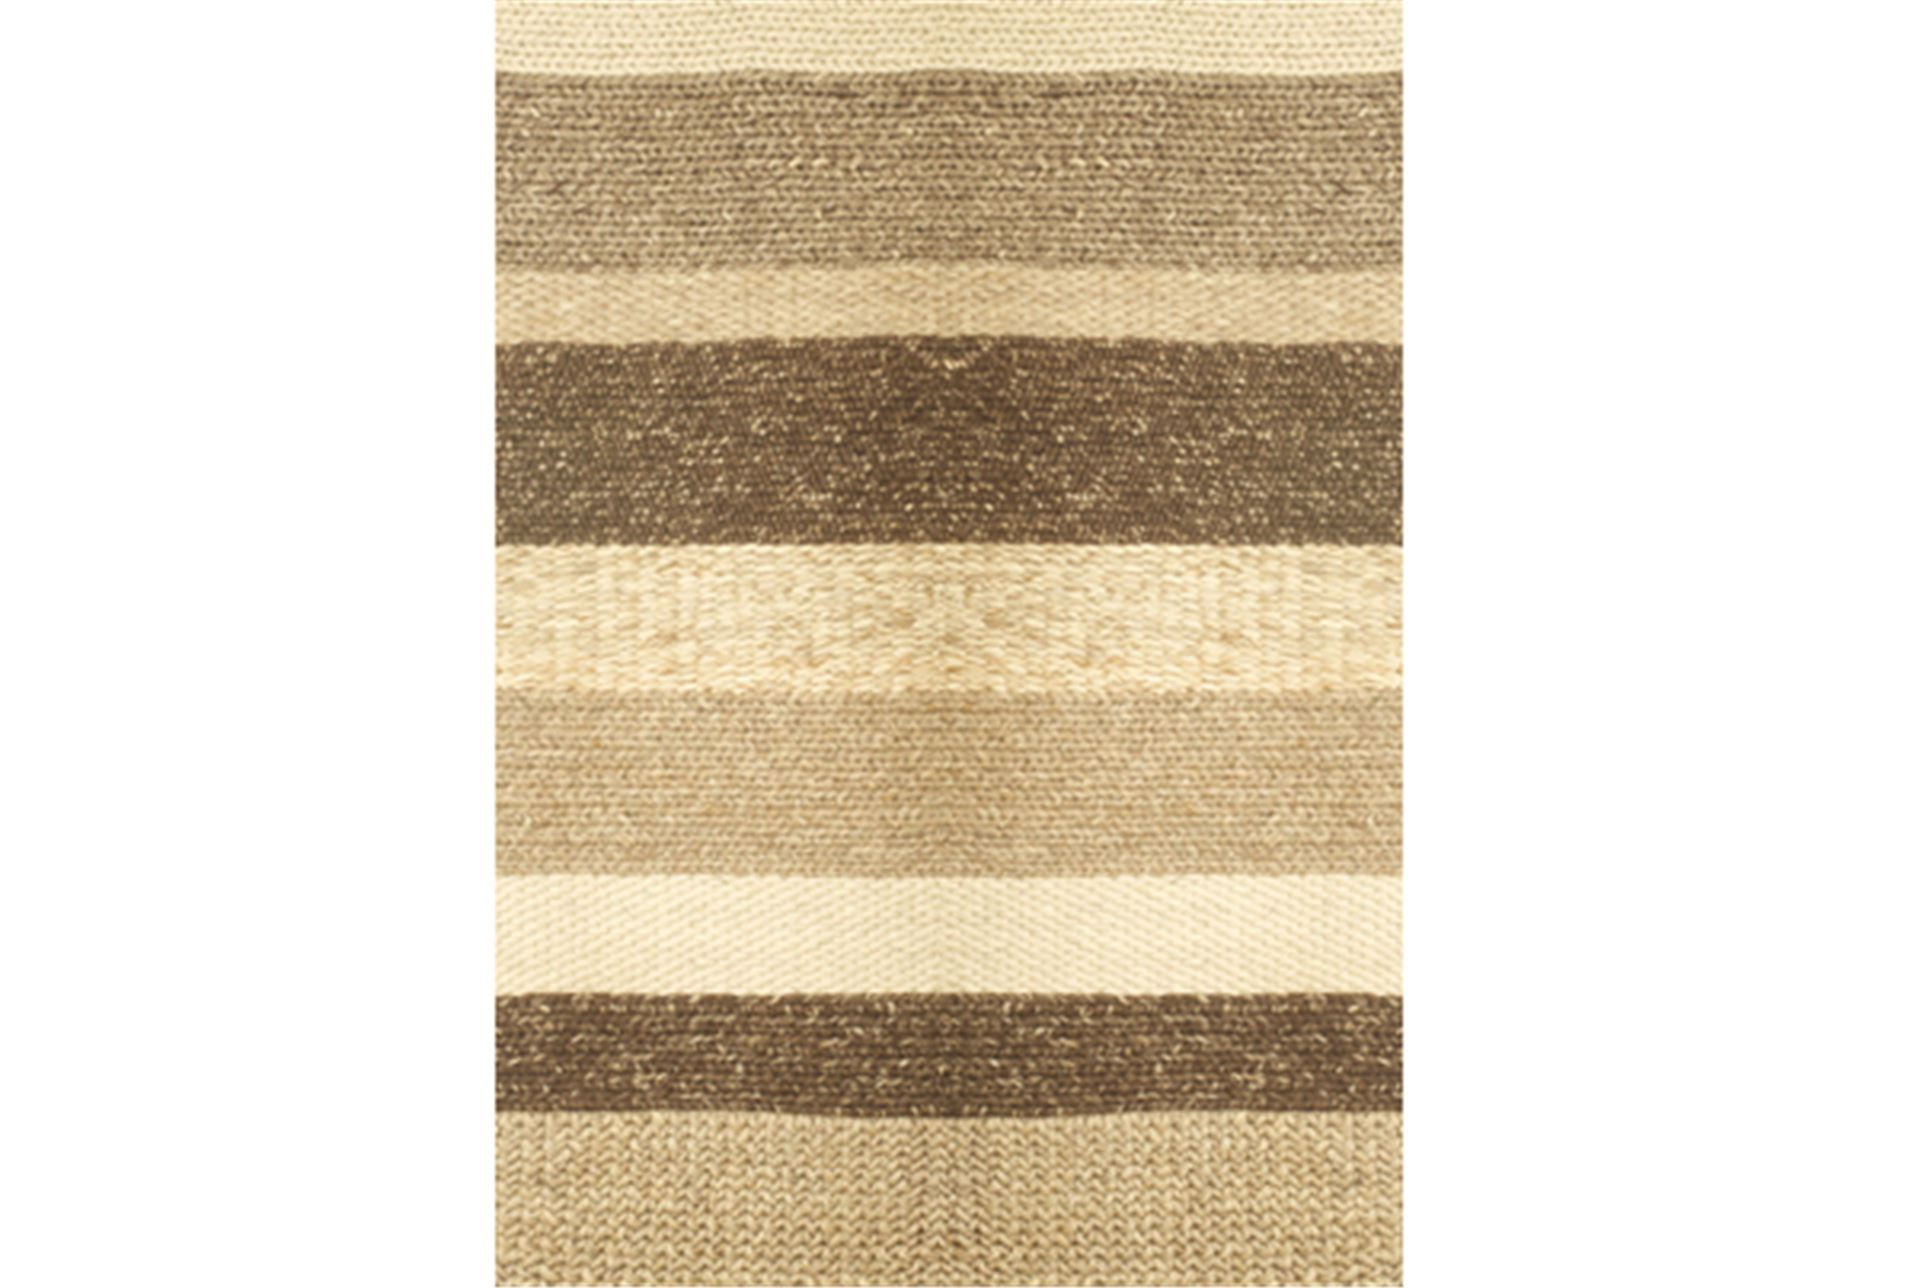 96x120 rug garrett stripe living spaces for Living spaces rugs